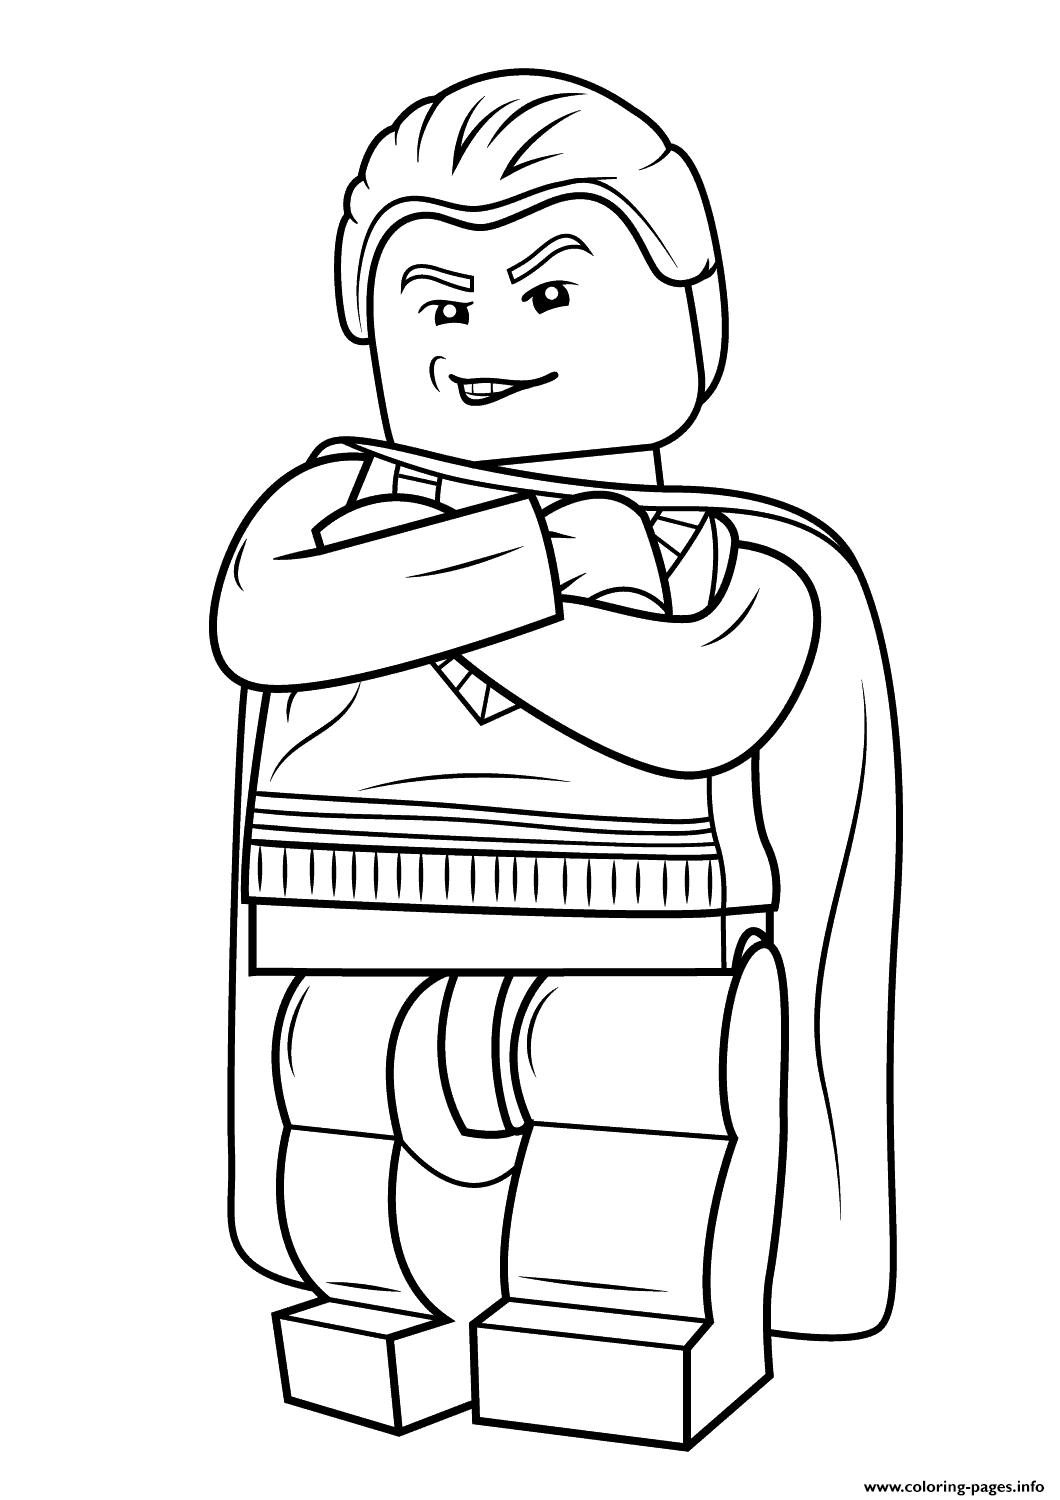 Lego harry potter coloring pages printable - Lego Harry Potter Coloring Pages Printable 7